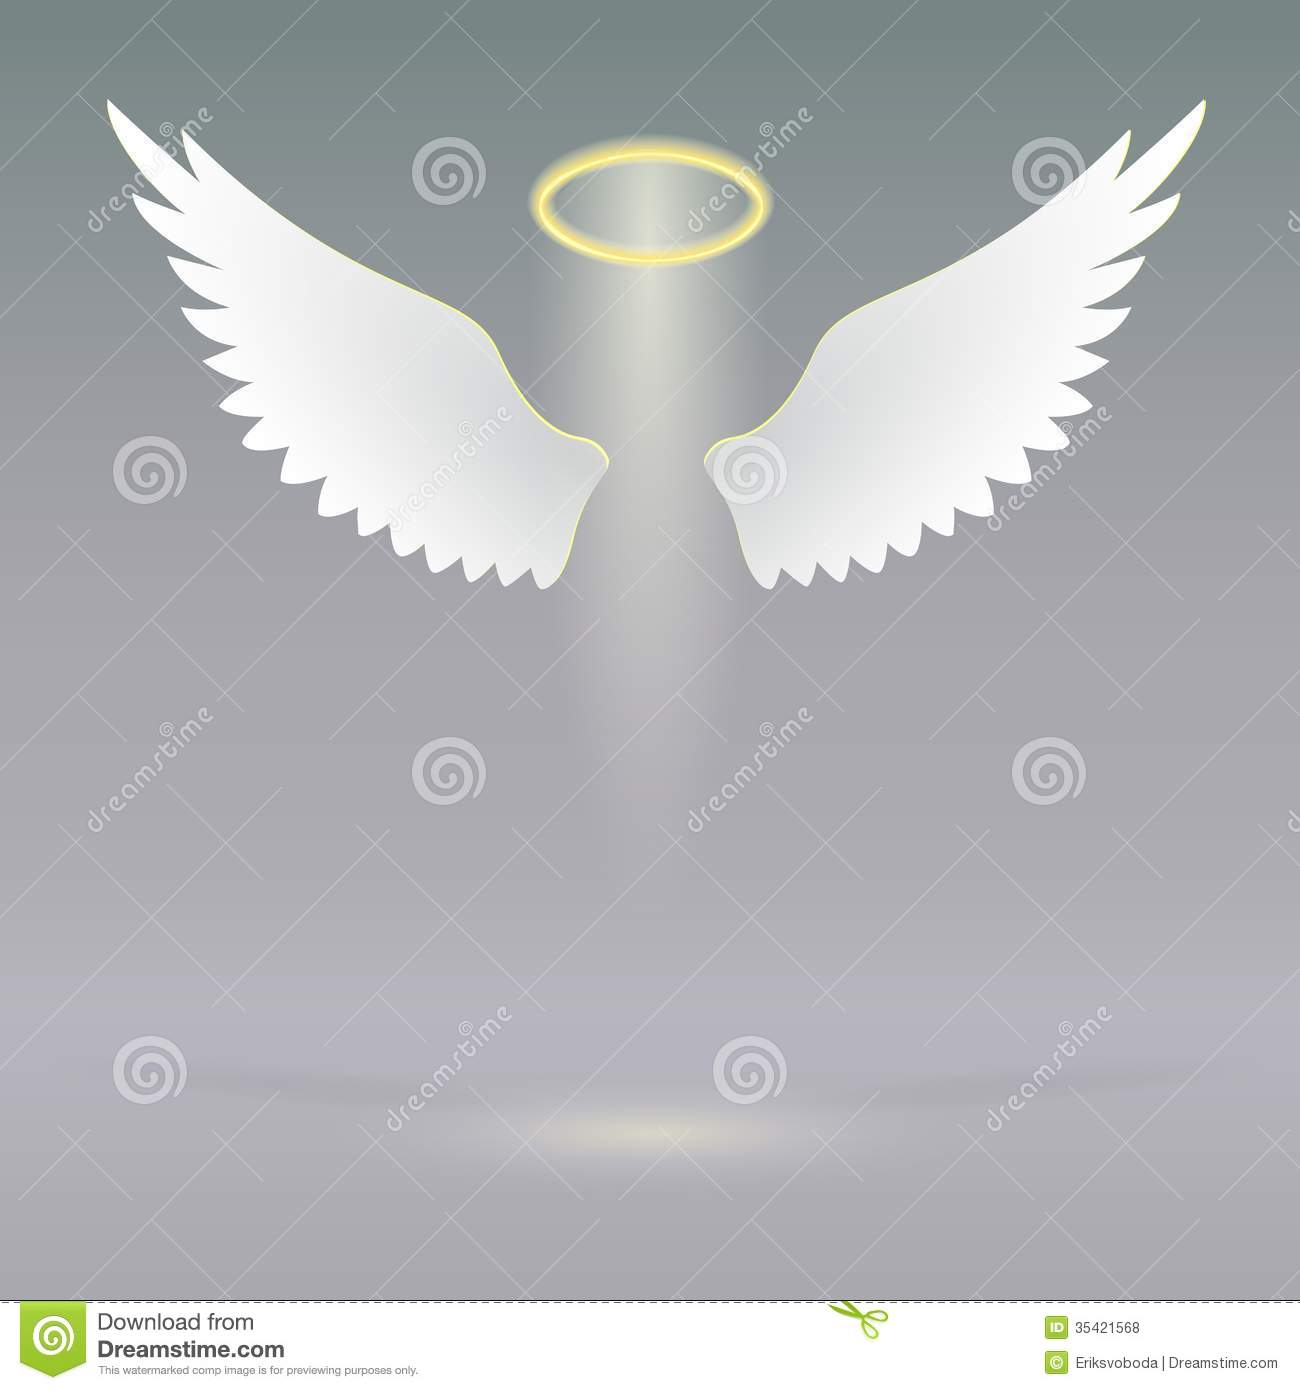 Angel Wings On Heavenly Stock Vector Illustration Of Eps10